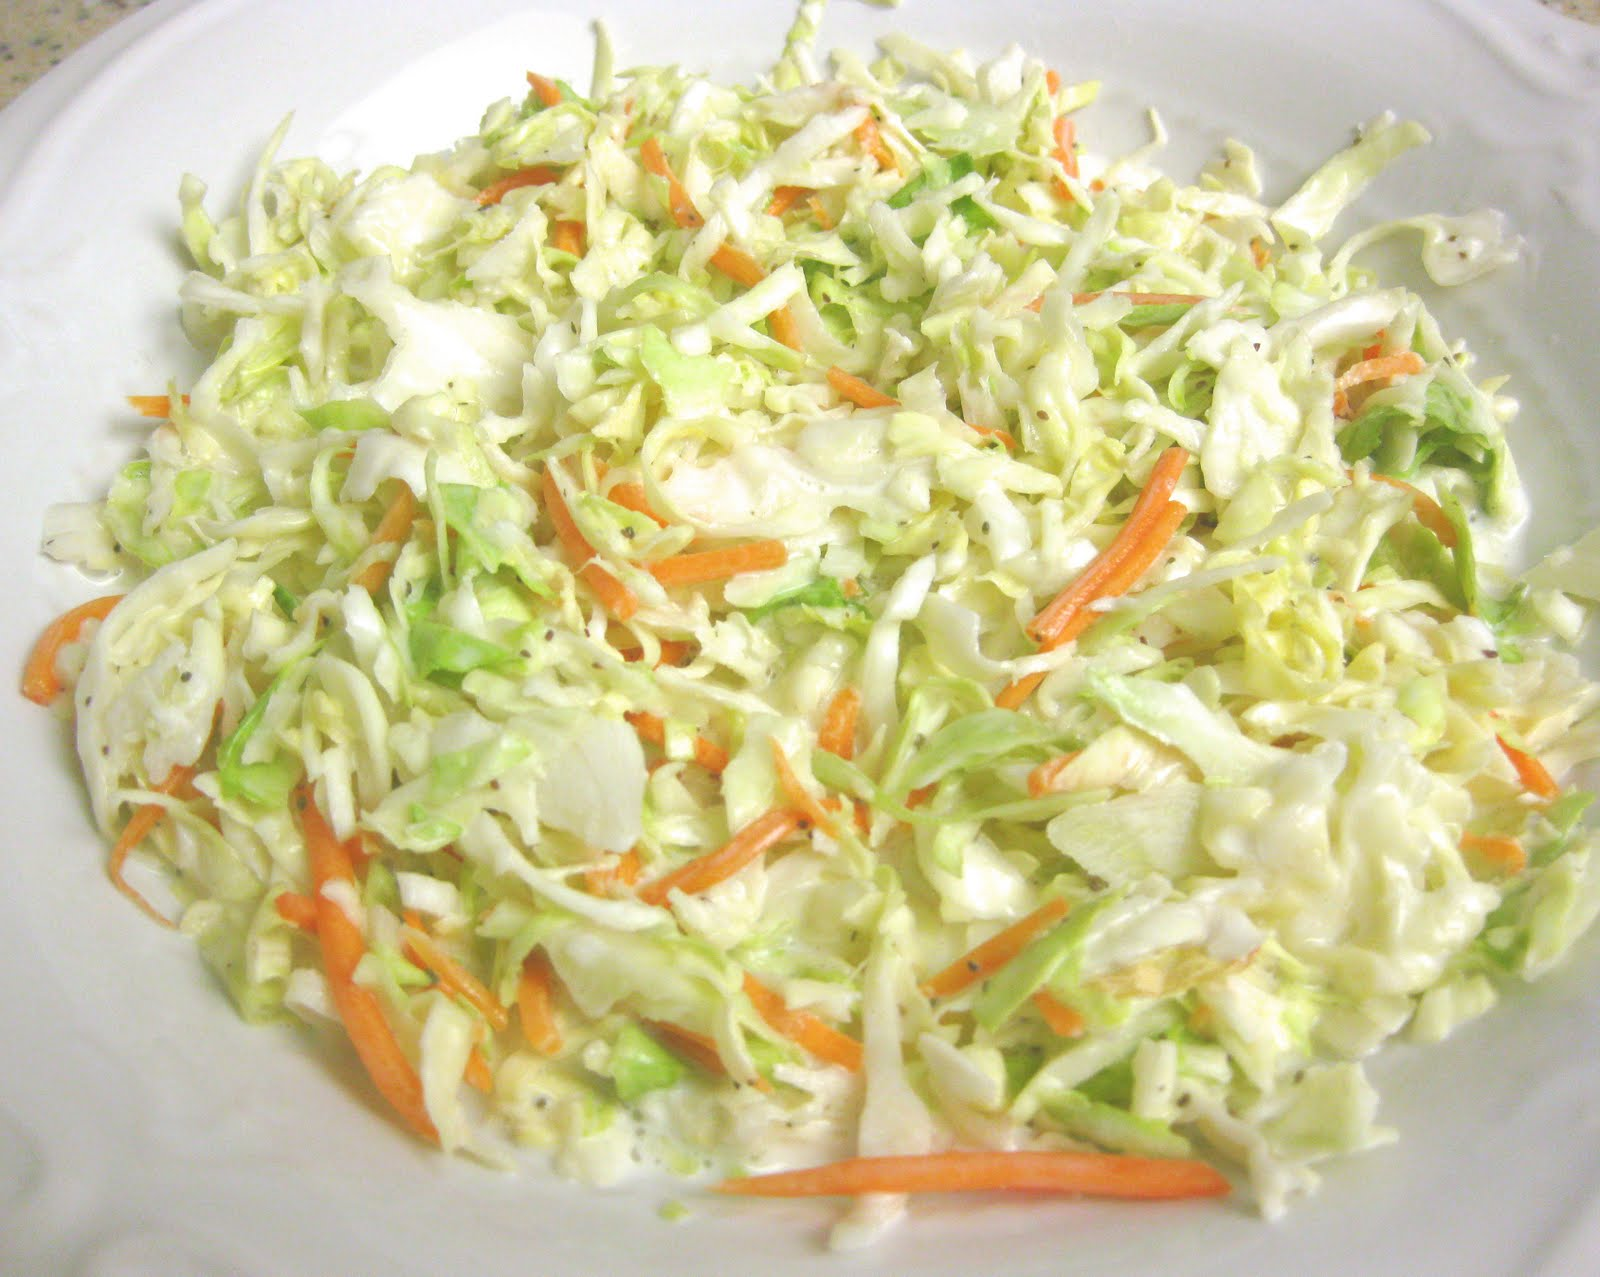 how to cut carrots to make coleslaw